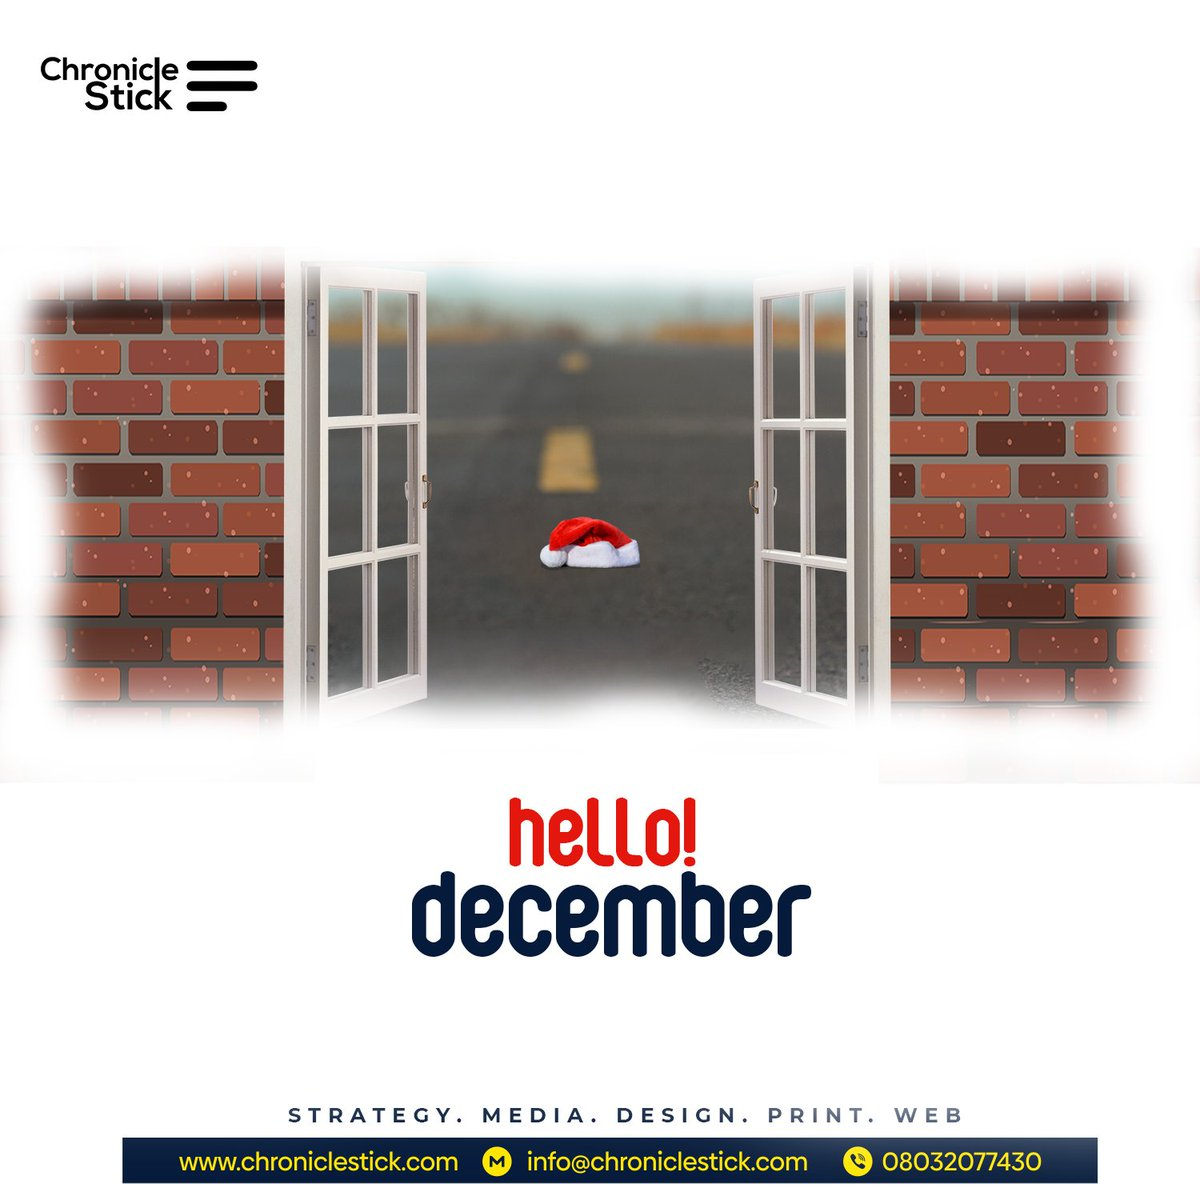 Wishing you a blissful and abundance of joy and happiness filled month ahead.  #chroniclestick #happiness #December1st #digitalagency #digitalmarketingagency